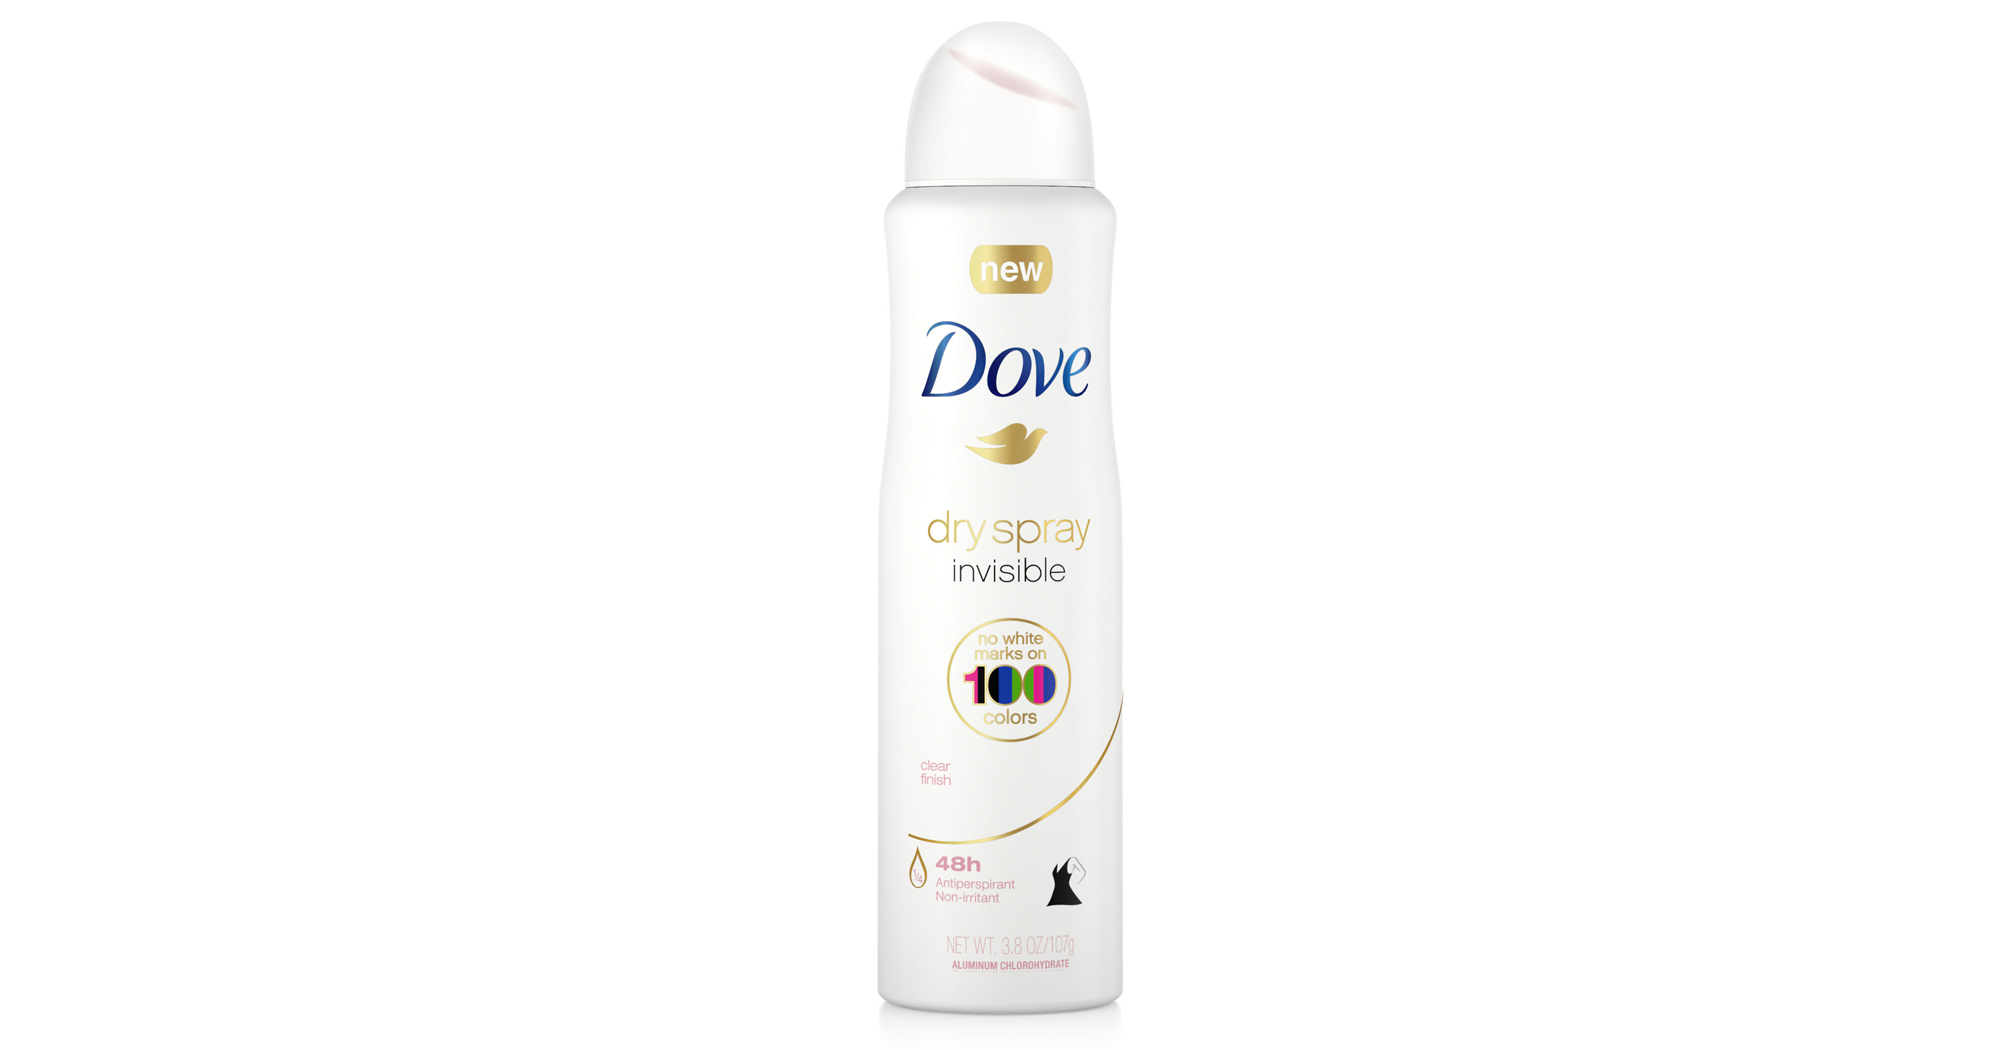 Dove New Deo Deodorant No White Marks Yellow Stains